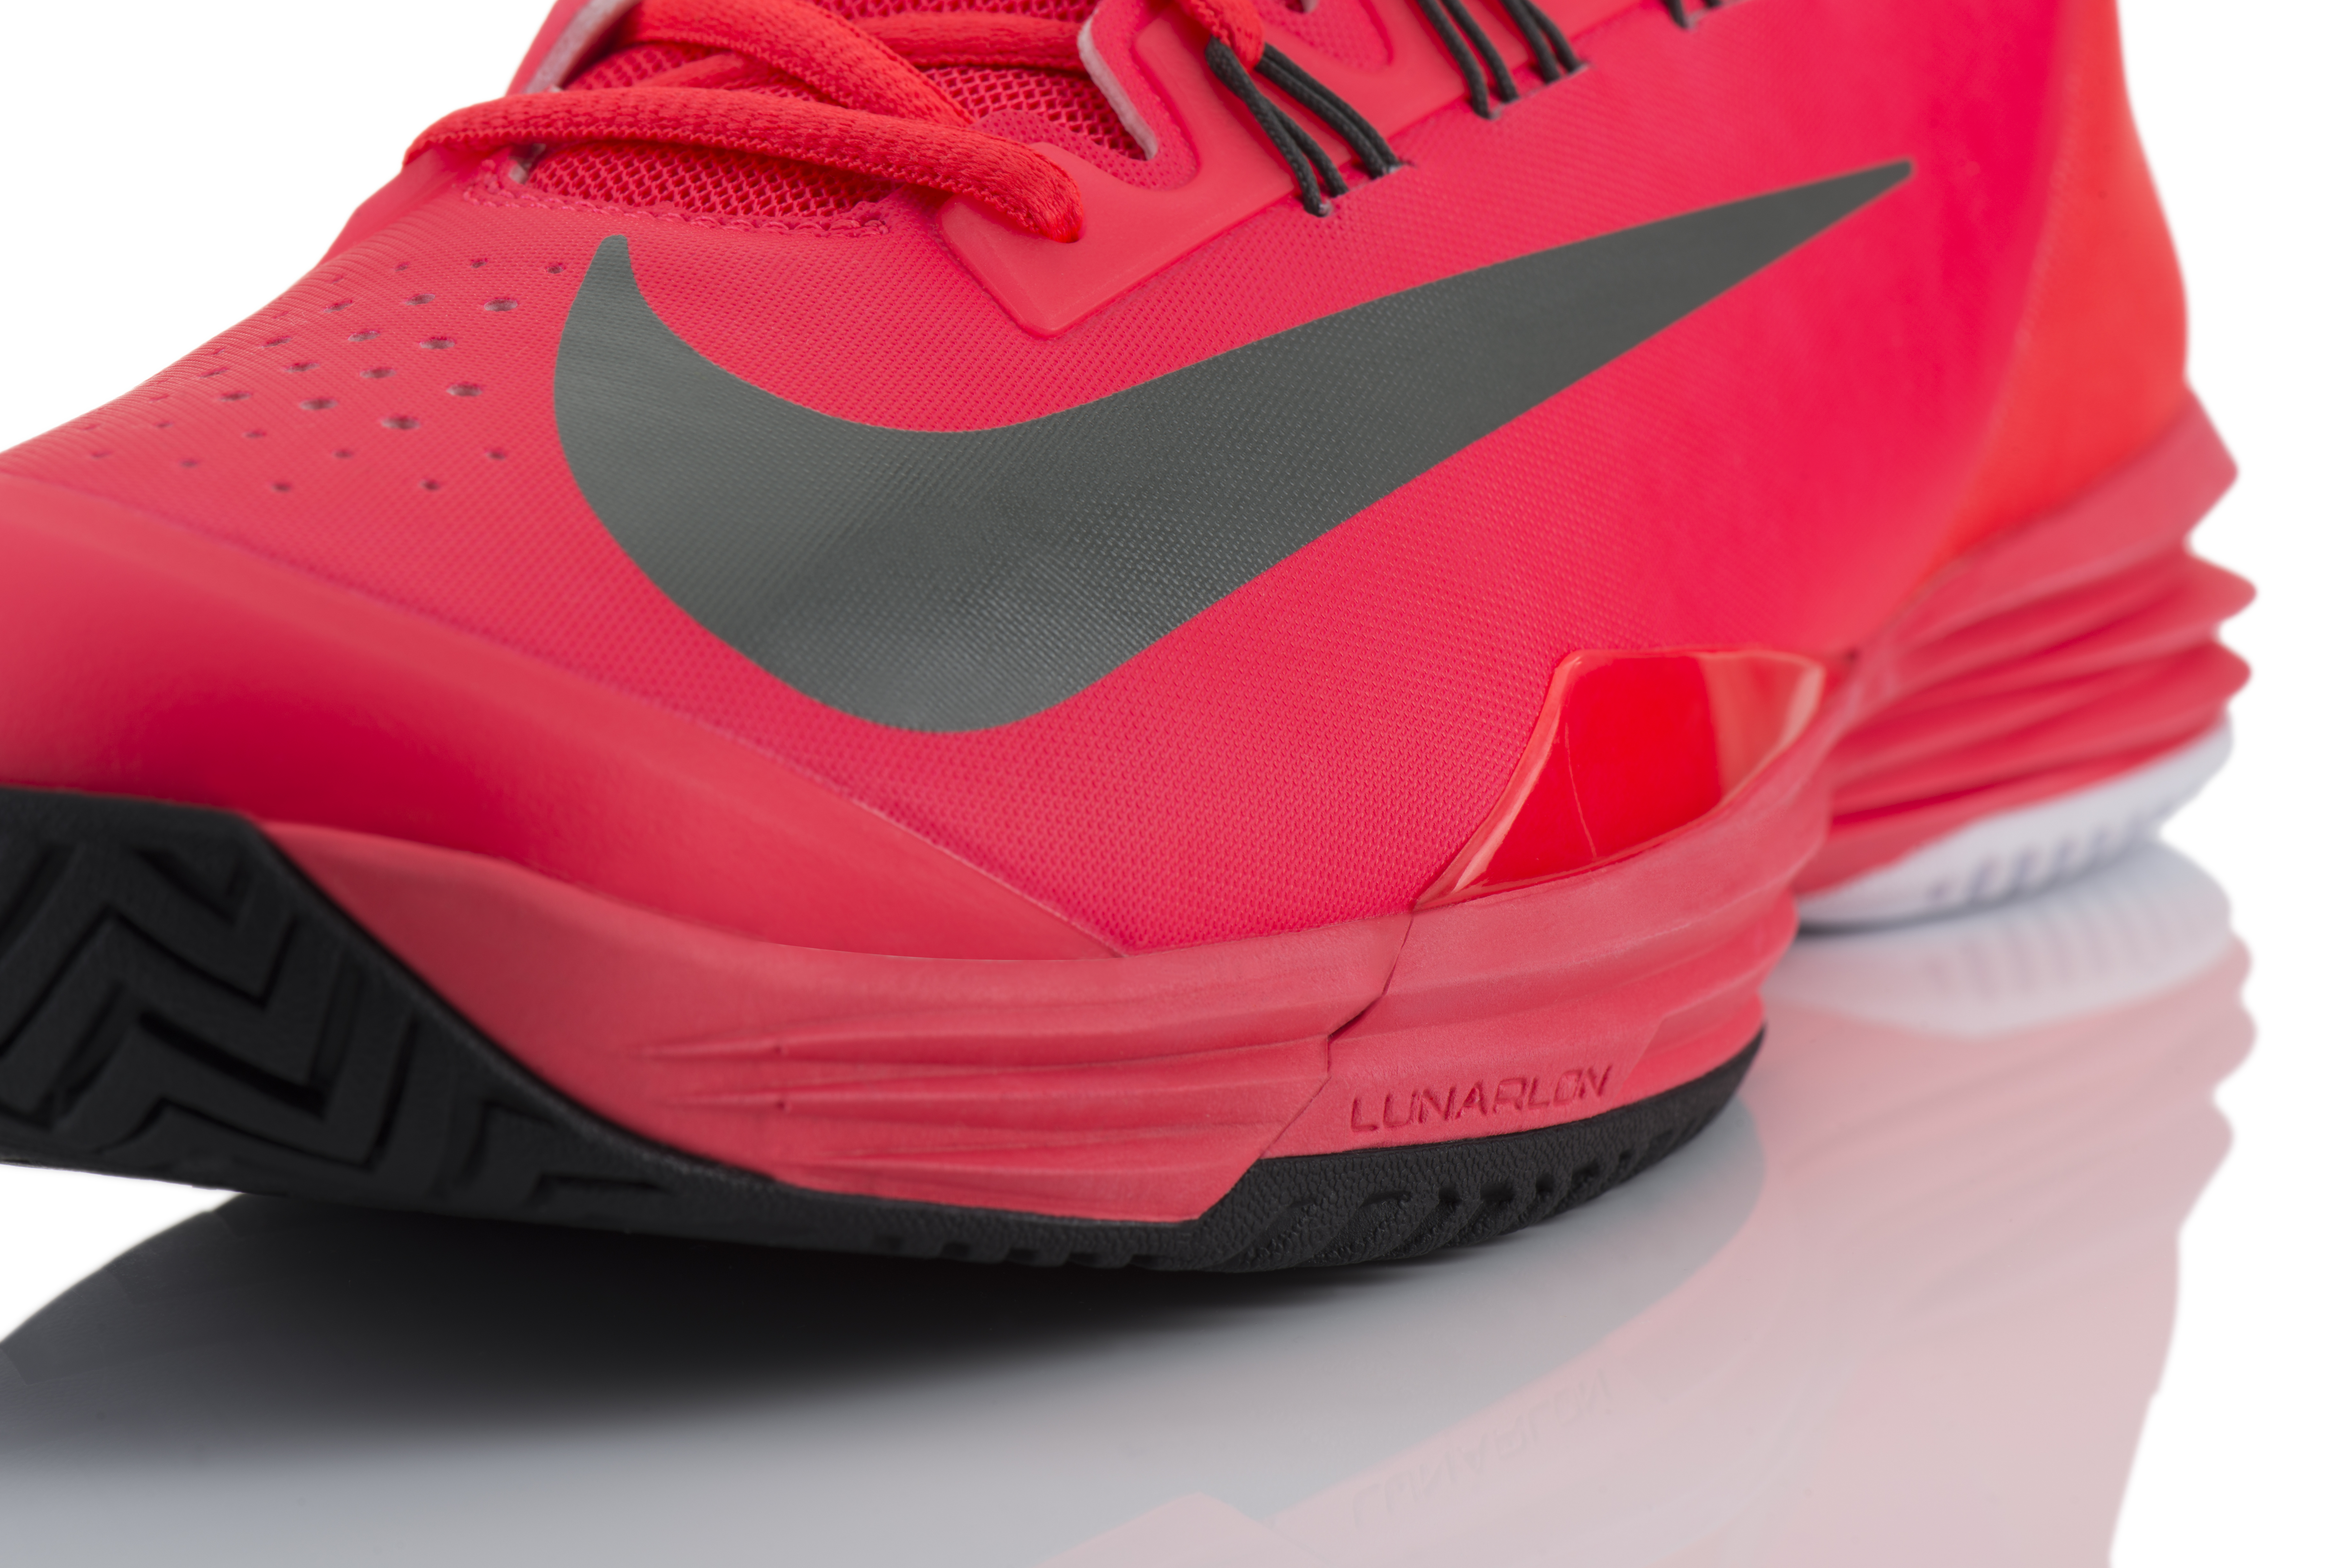 nike running shoes with nike plus nike tennis shoes red